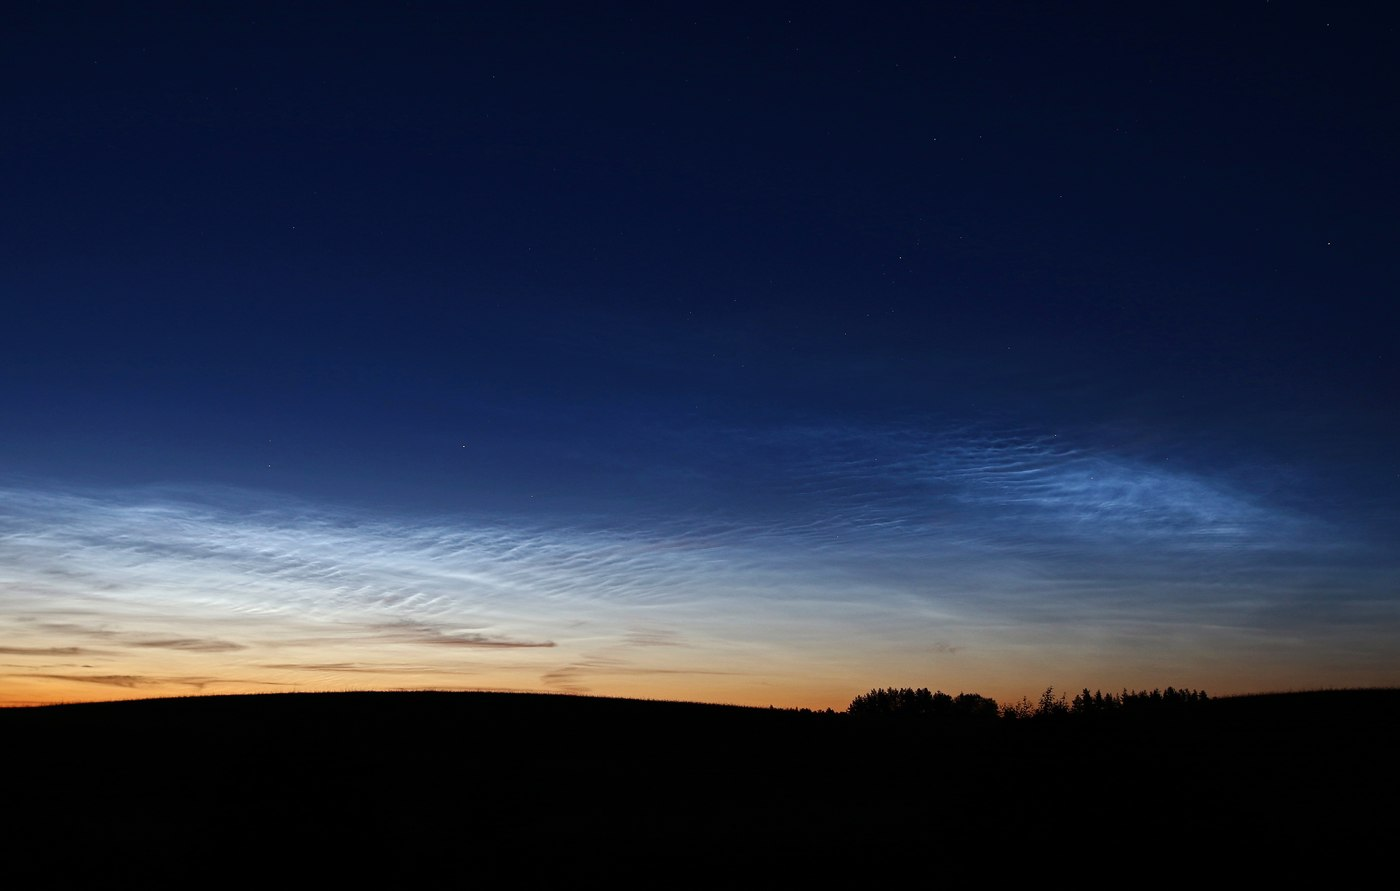 noctilucent clouds, noctilucent clouds june 2016, noctilucent clouds pictures, noctilucent clouds video, noctilucent clouds june 2016 pictures, noctilucent clouds june 2016 video, Mindaugas Gasparavičius